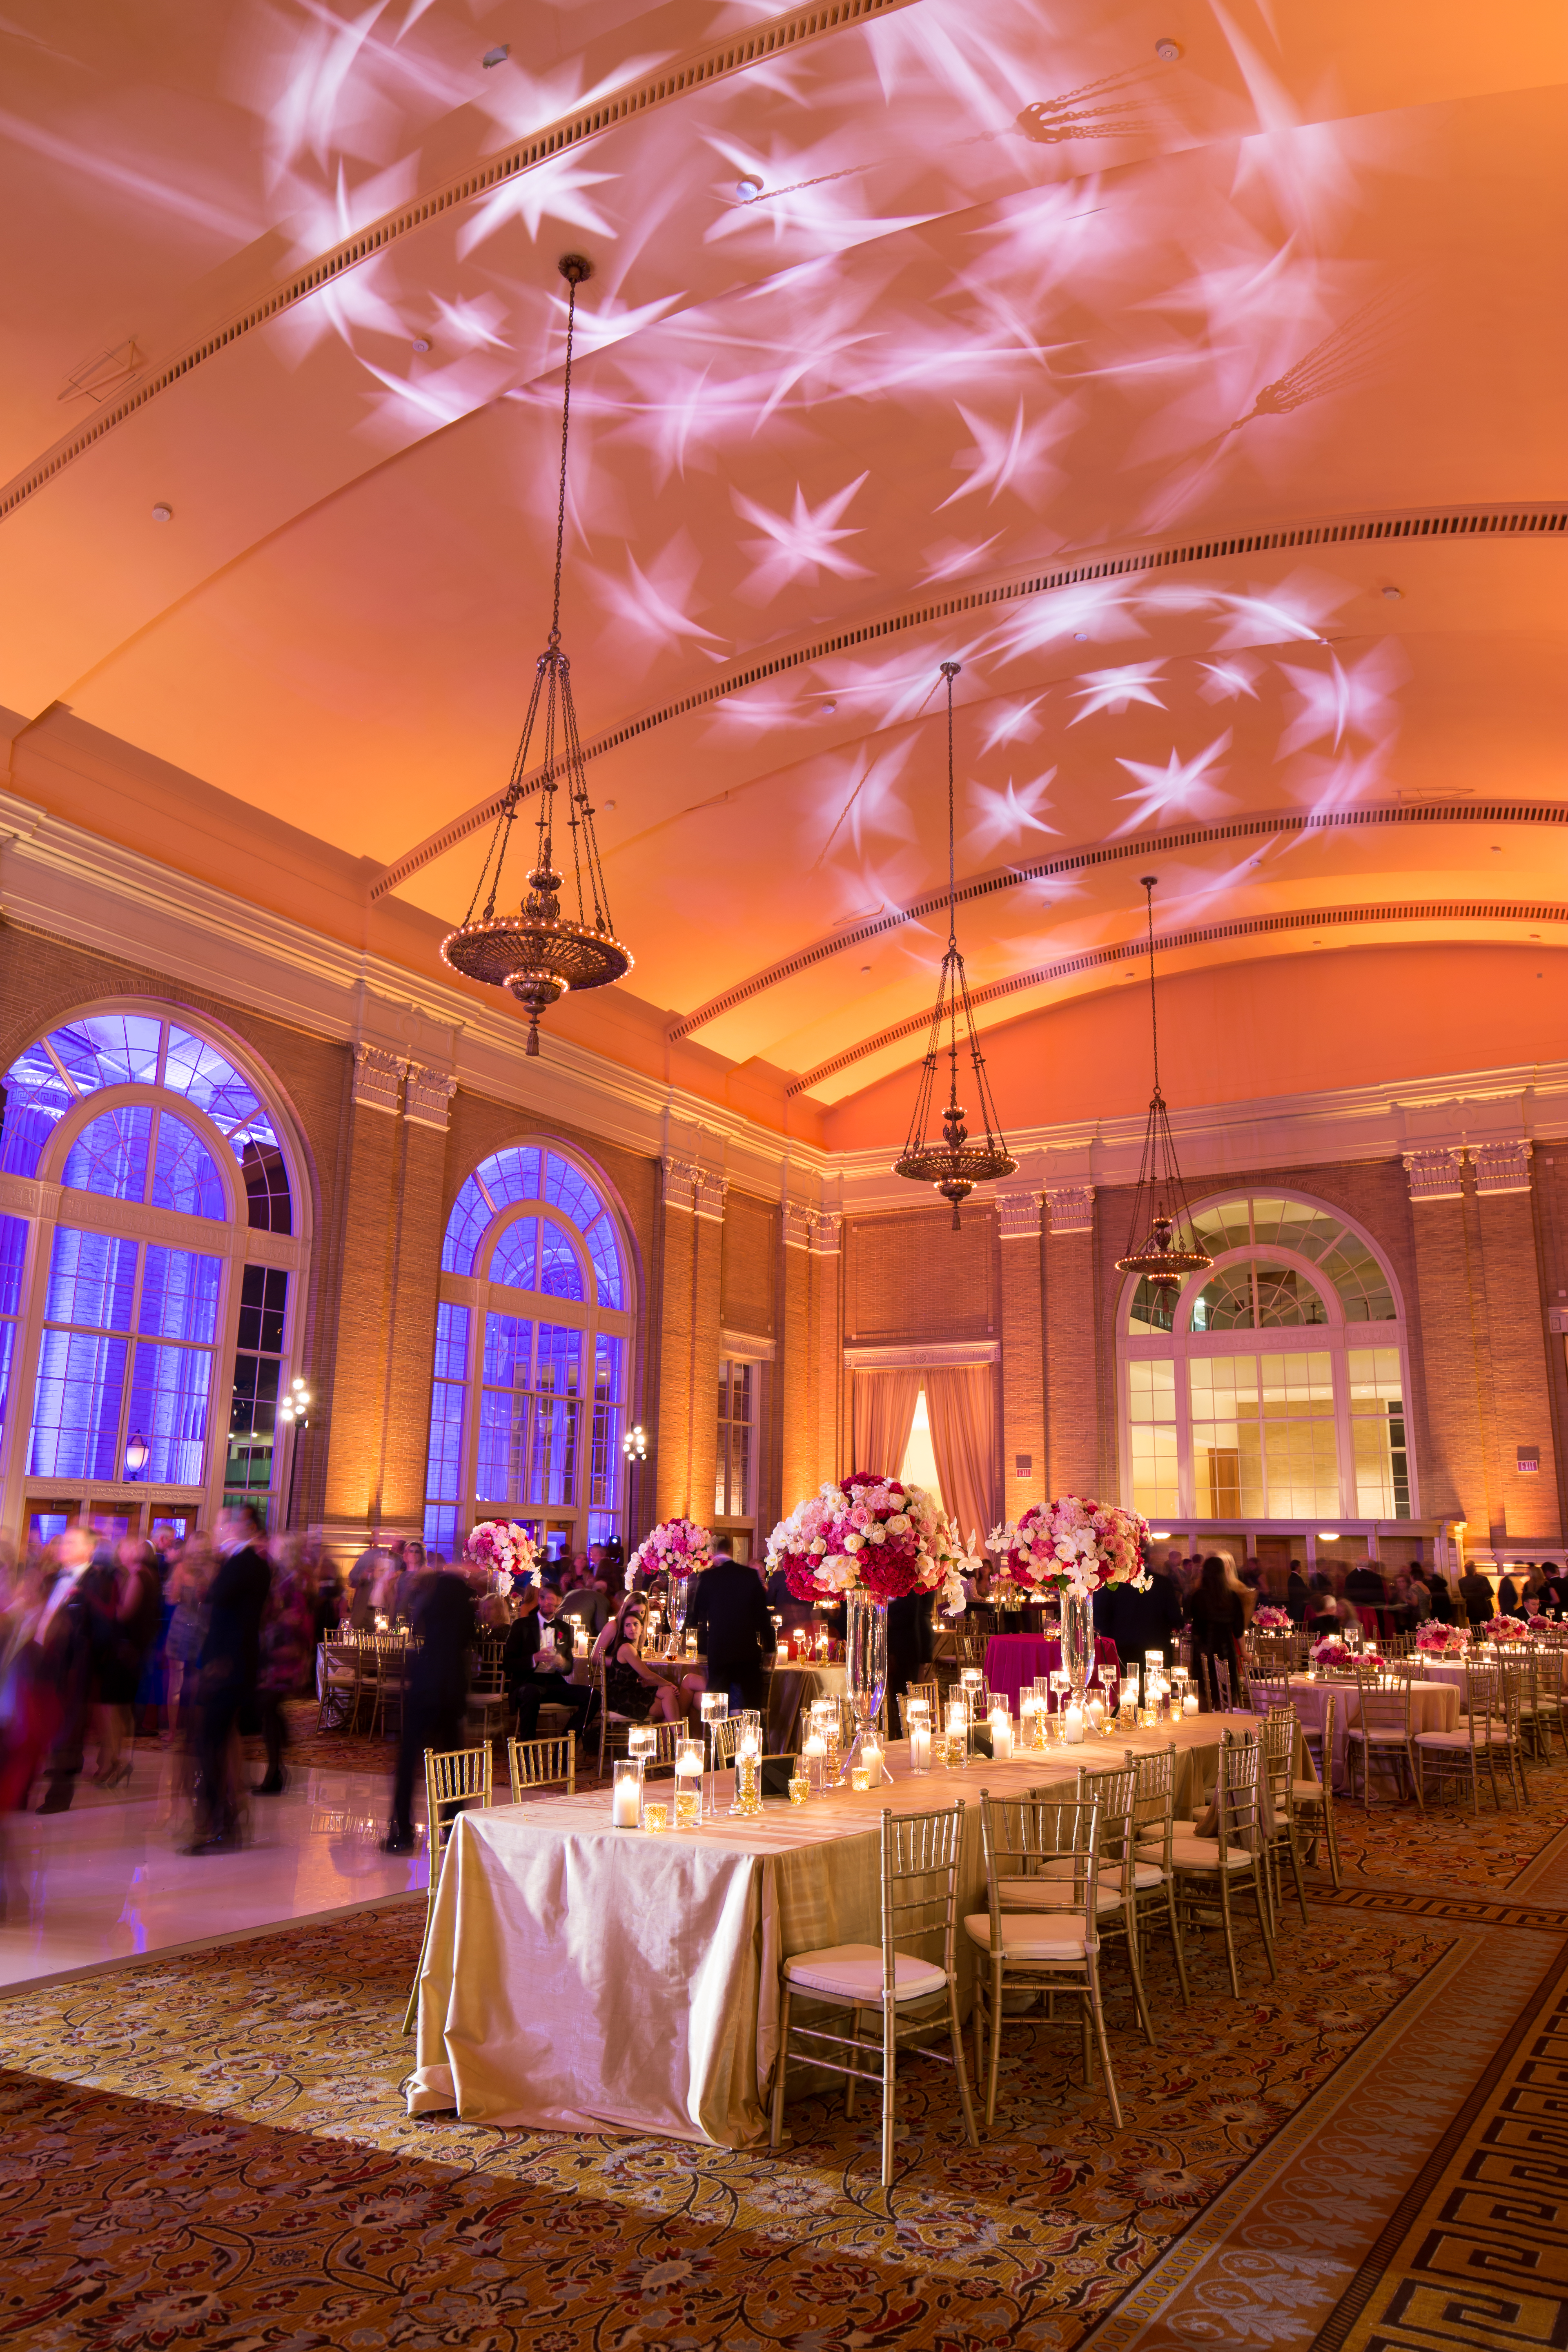 Go Beyond with pattern projections gobos lights pattern dallas fort worth events weddings Photo by Stephen Karlisch_0004